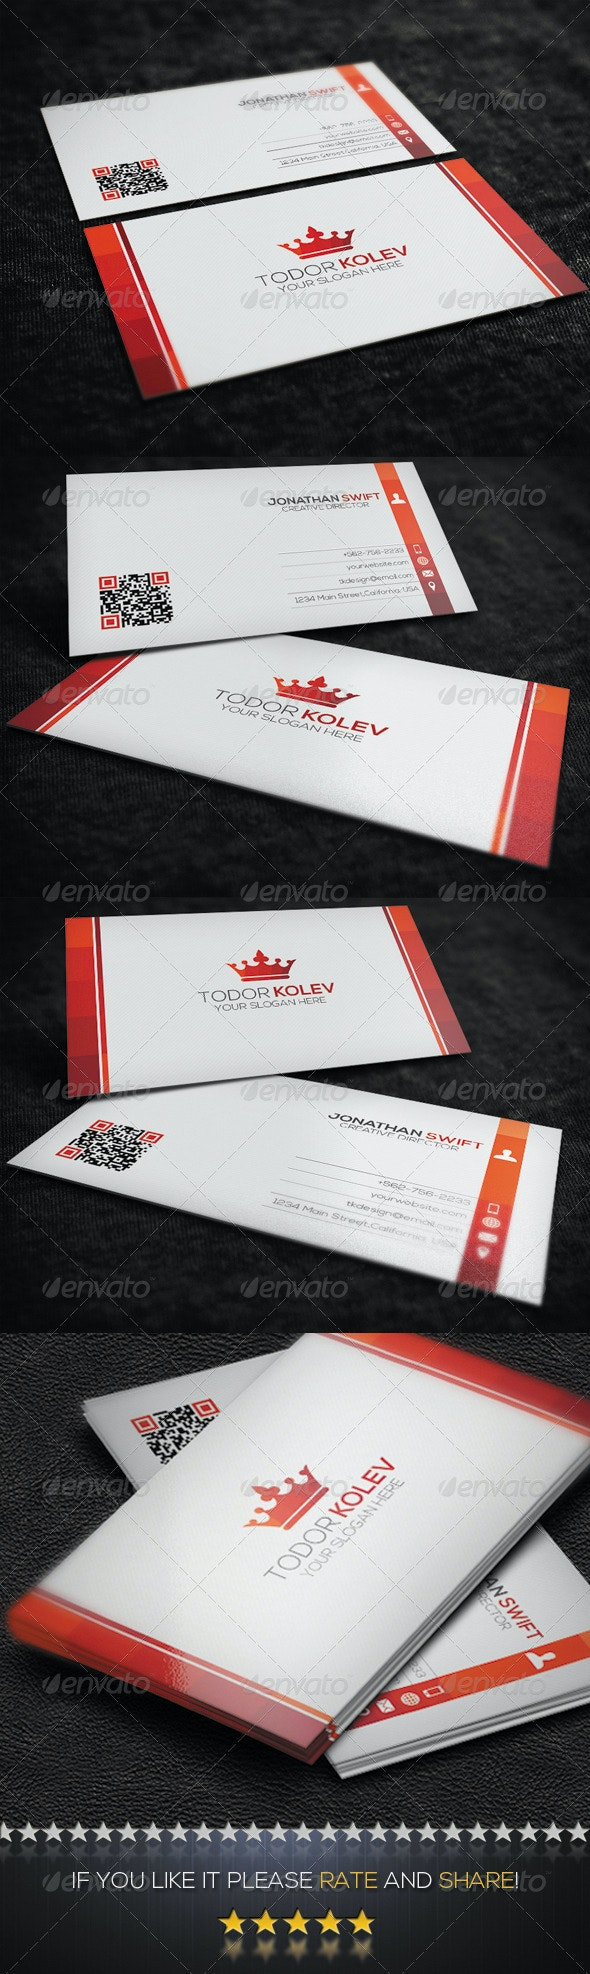 Clean Corporate Business Card  No.02 - Corporate Business Cards